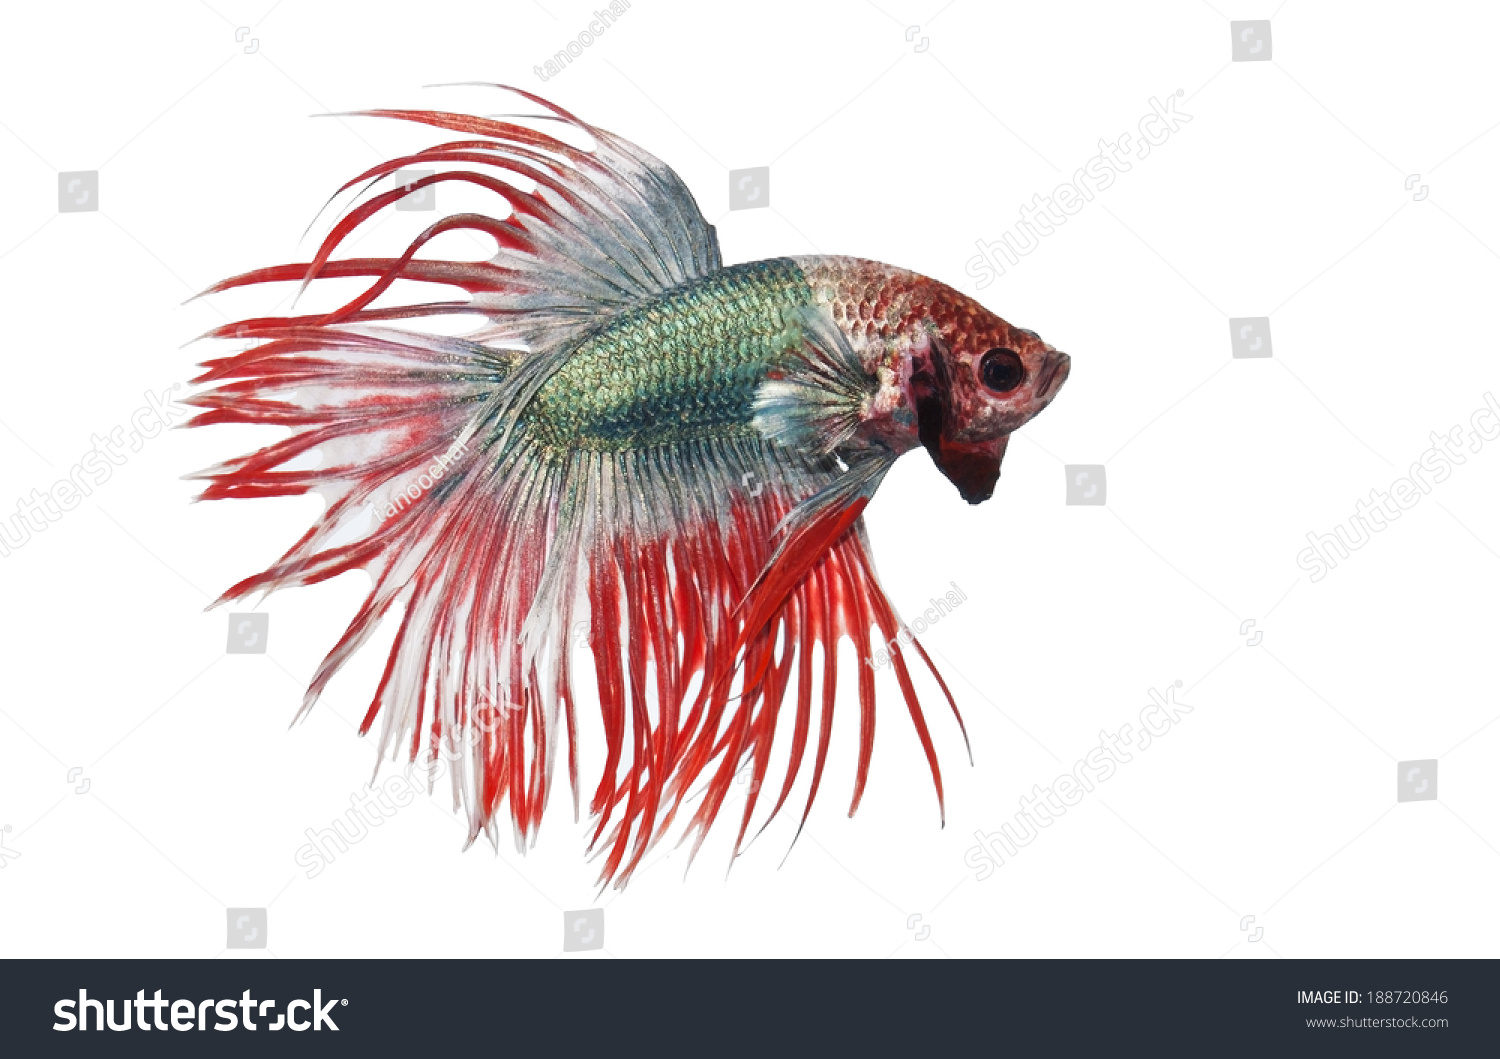 Siamese Fighting Fish Betta Splendens Crowntail Stock Photo (Royalty ...